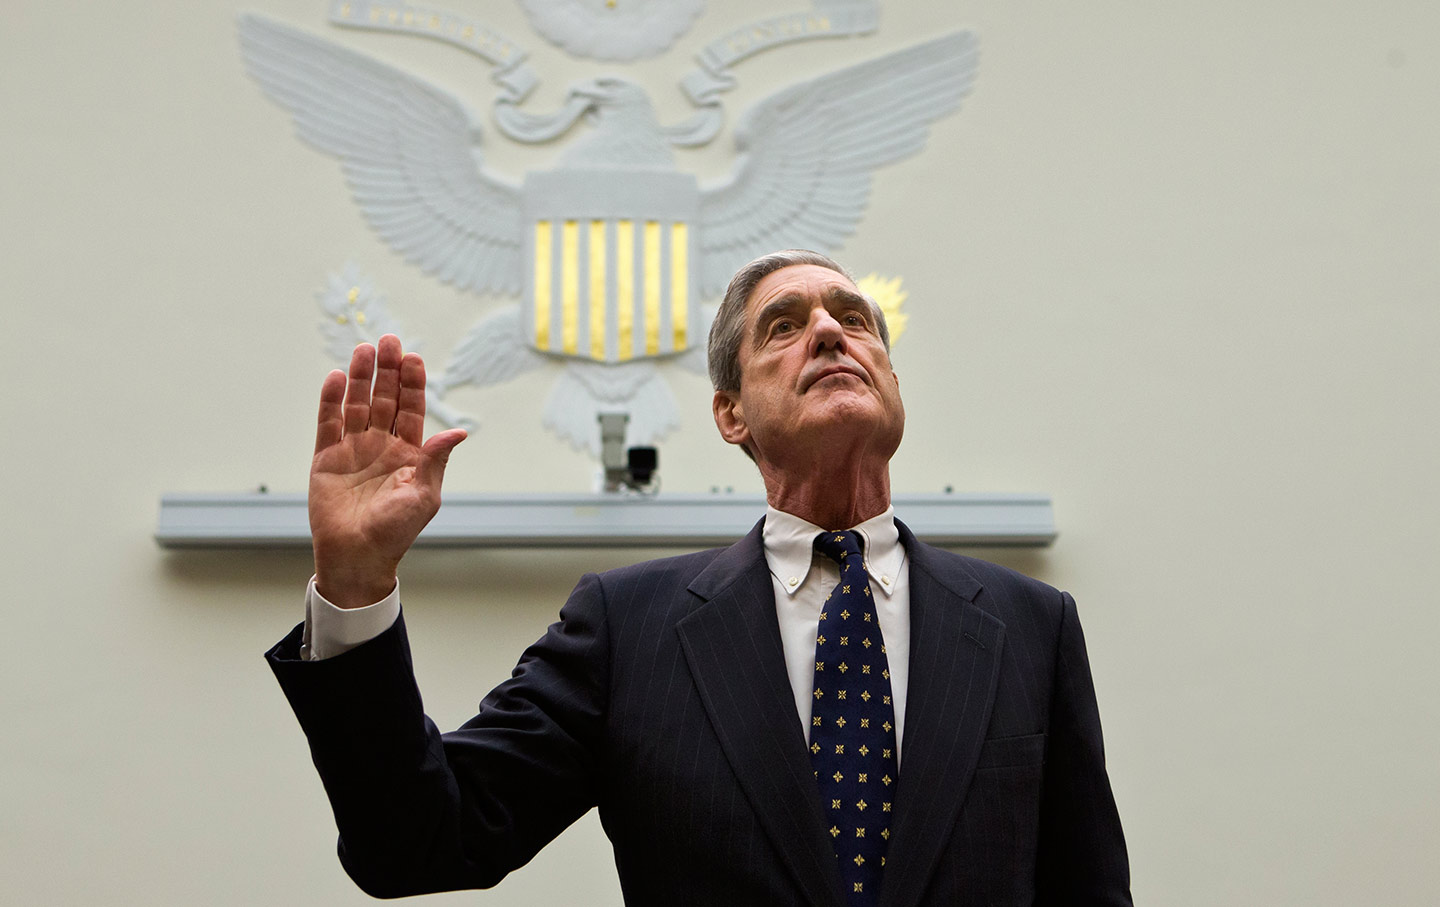 Robert Mueller sworn in